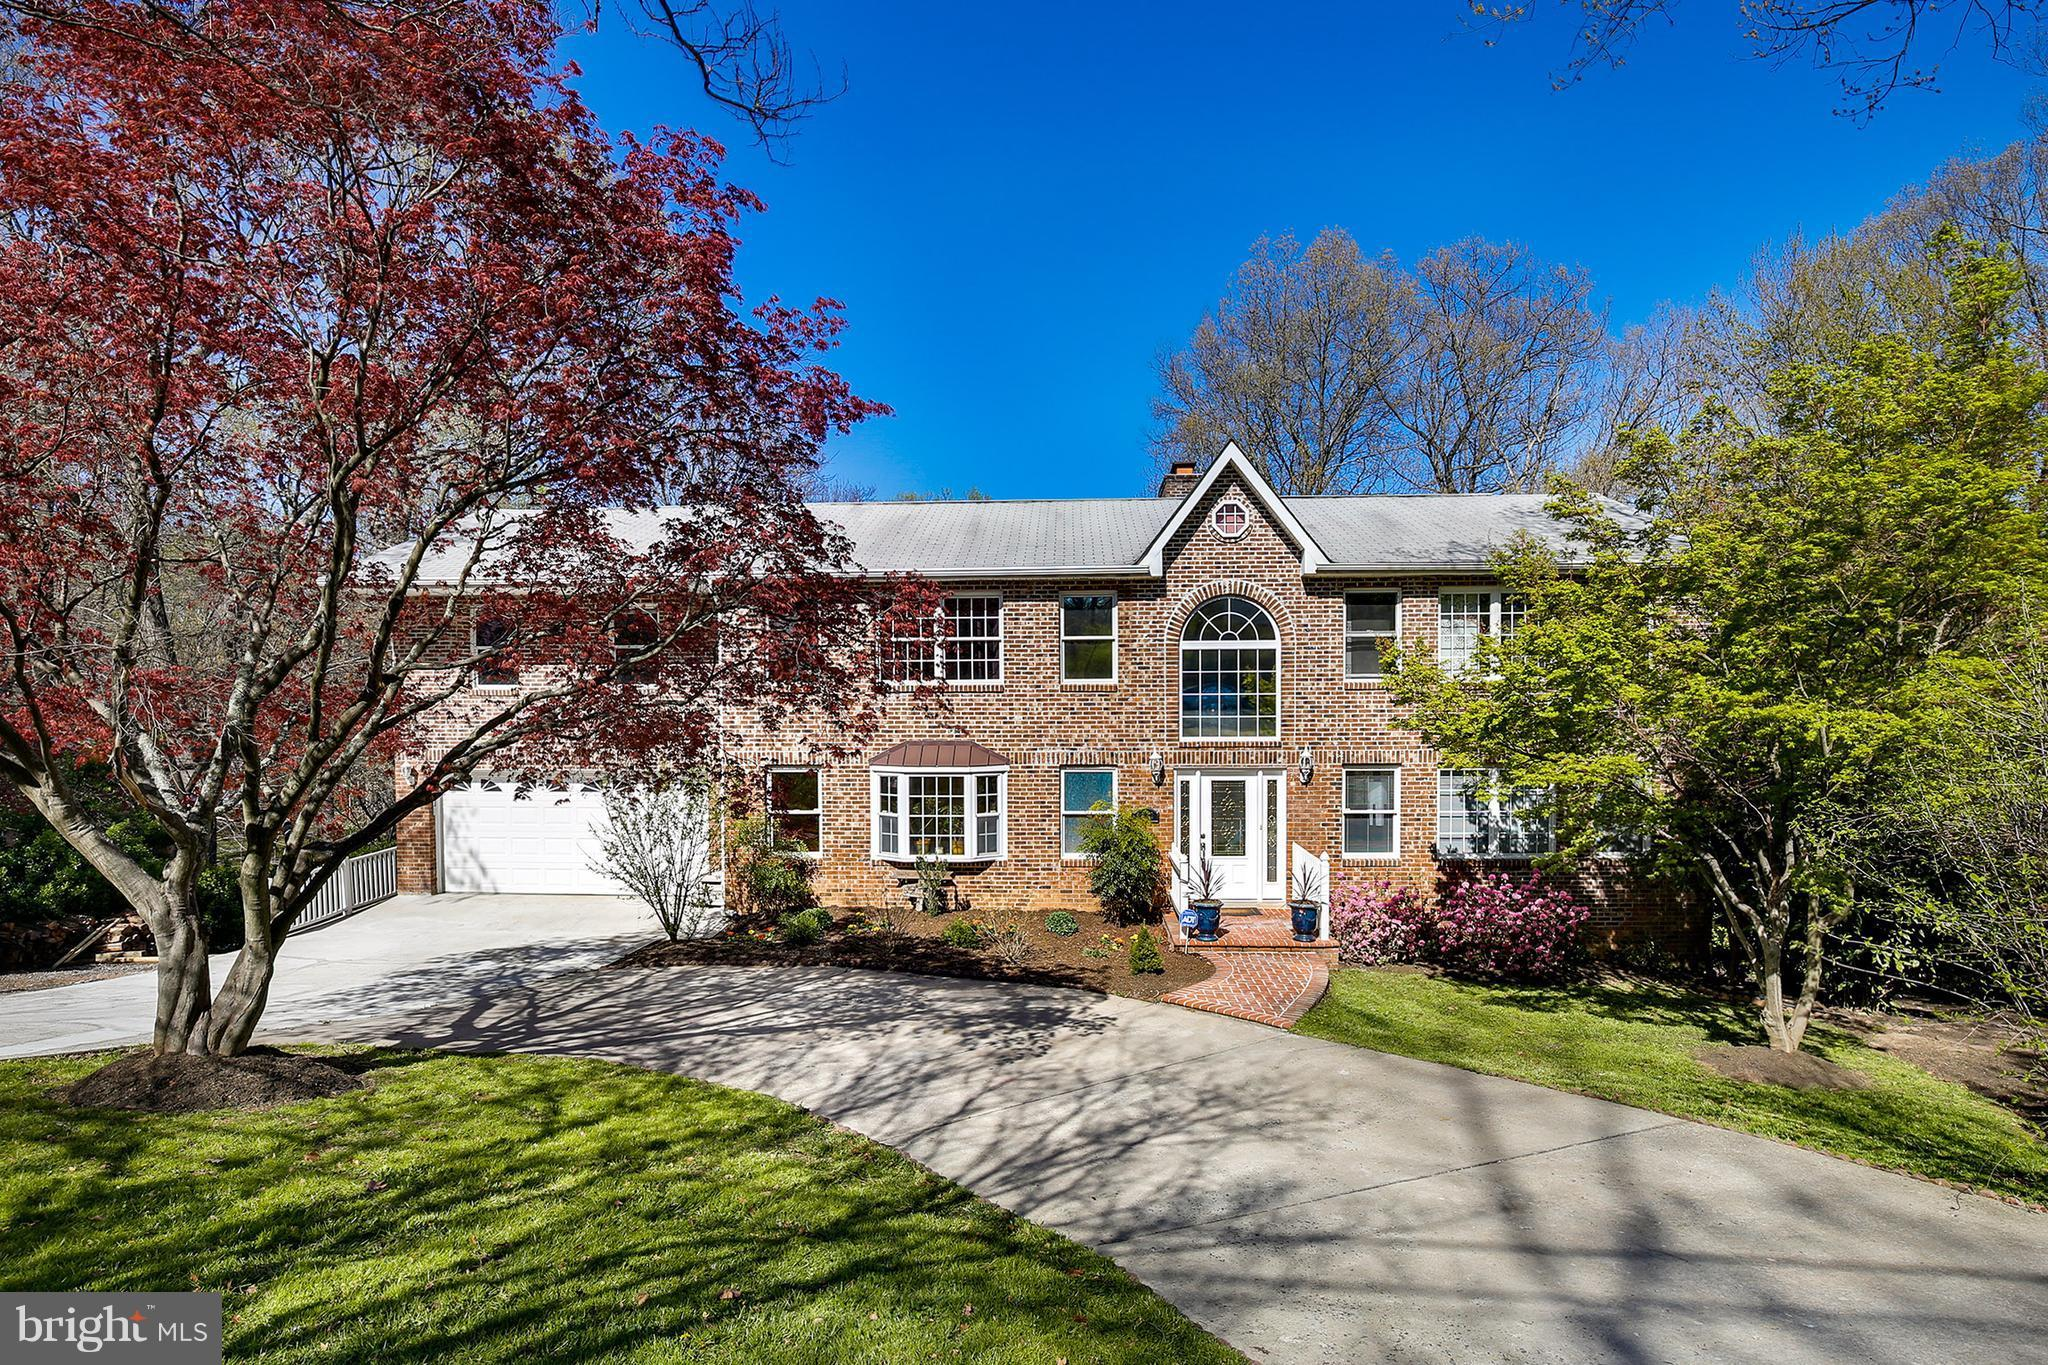 Incredible home on a gorgeous lot w/ circular driveway. Less than a mile to Thomas Jefferson school. LL w/ in-law suite. Wet bar. Entertainment room. Two-level deck. HW floors. Bright & open kit w/ granite, SS apps. MA suite w/ large walk-in closet, jacuzzi tub, sep. shower & dual vanities. Spacious BRs. 2nd-fl laundry. Close to everything on a quiet & serene street. Great for entertaining!